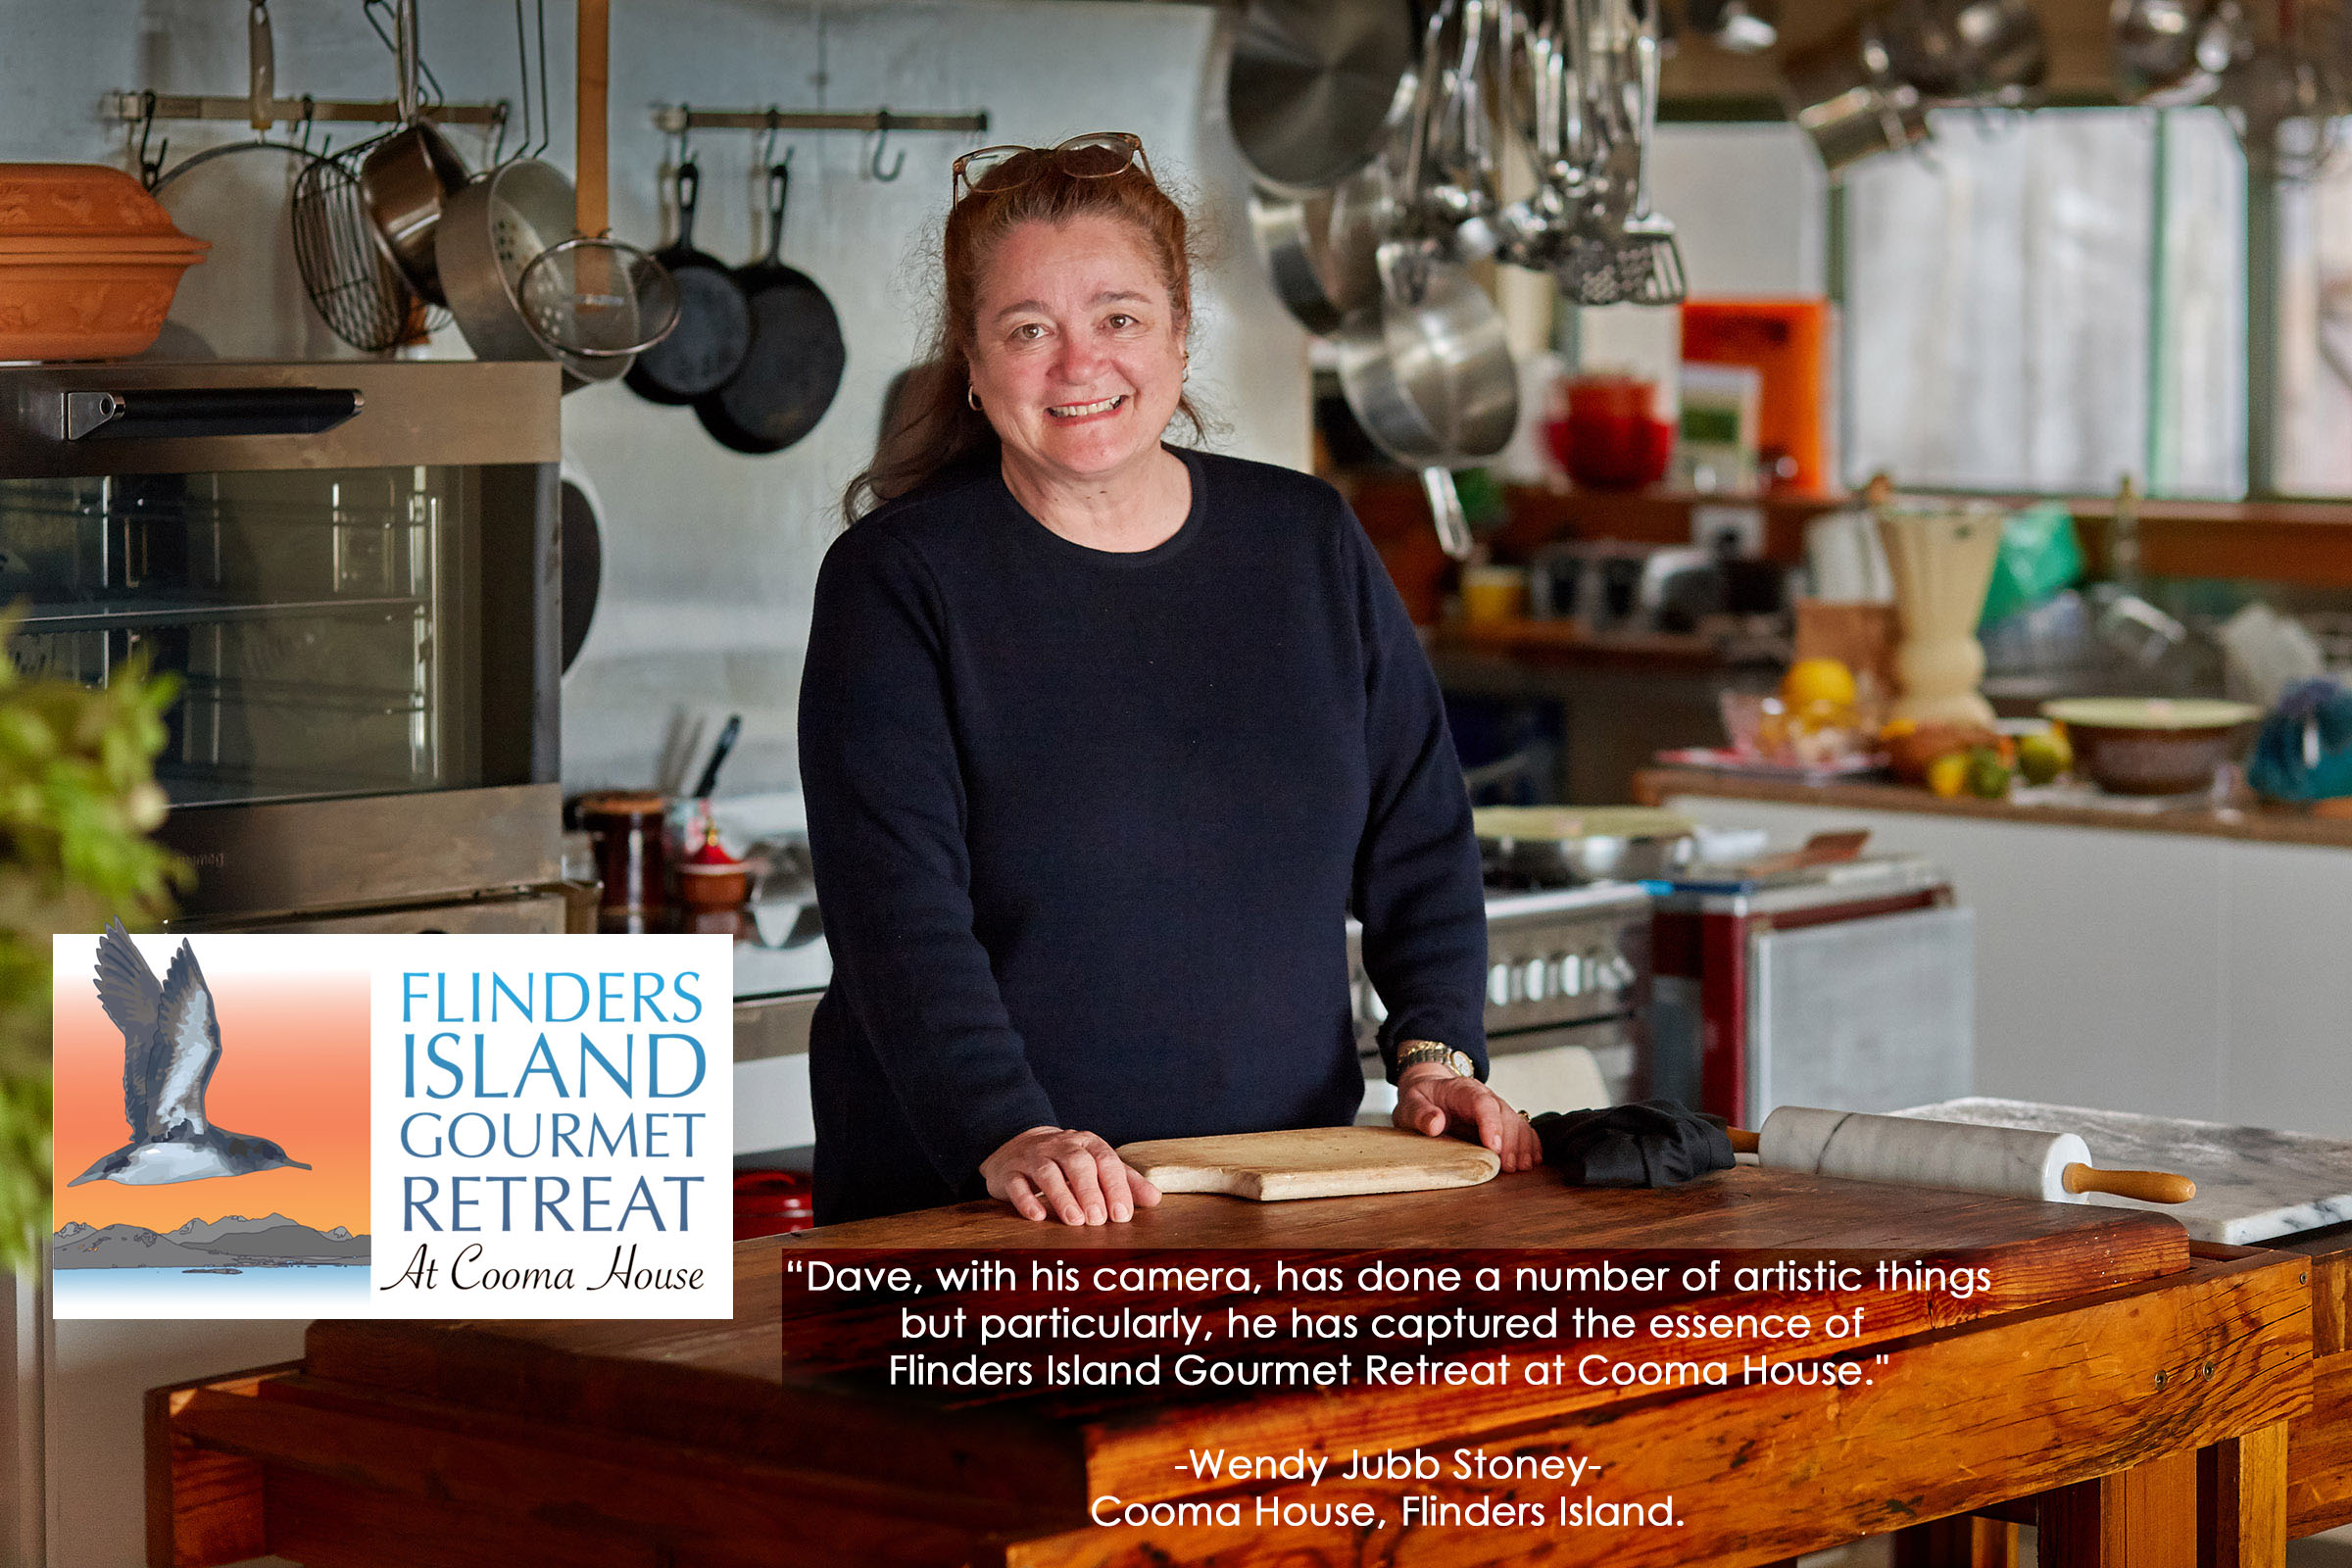 ©_Dave_Groves_Photography_Flinders_Island_Gourmet_Retreat_Cooma_House_Portrait_Wendy_Jubb_Stoney.jpg